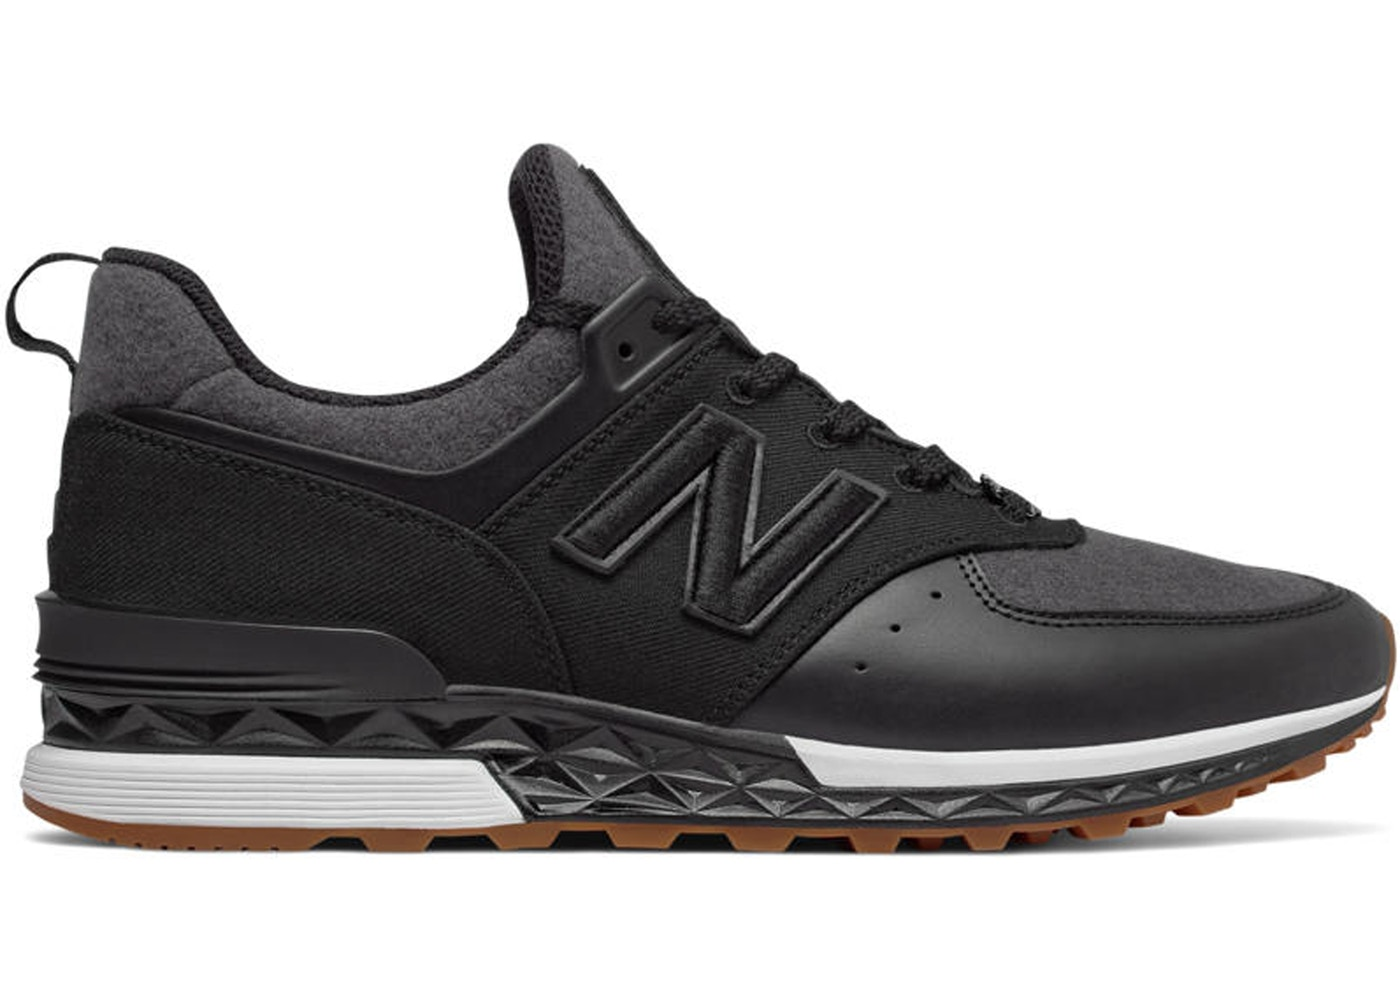 san francisco 9b219 f1b76 New Balance 574 Sport New Era Black Grey